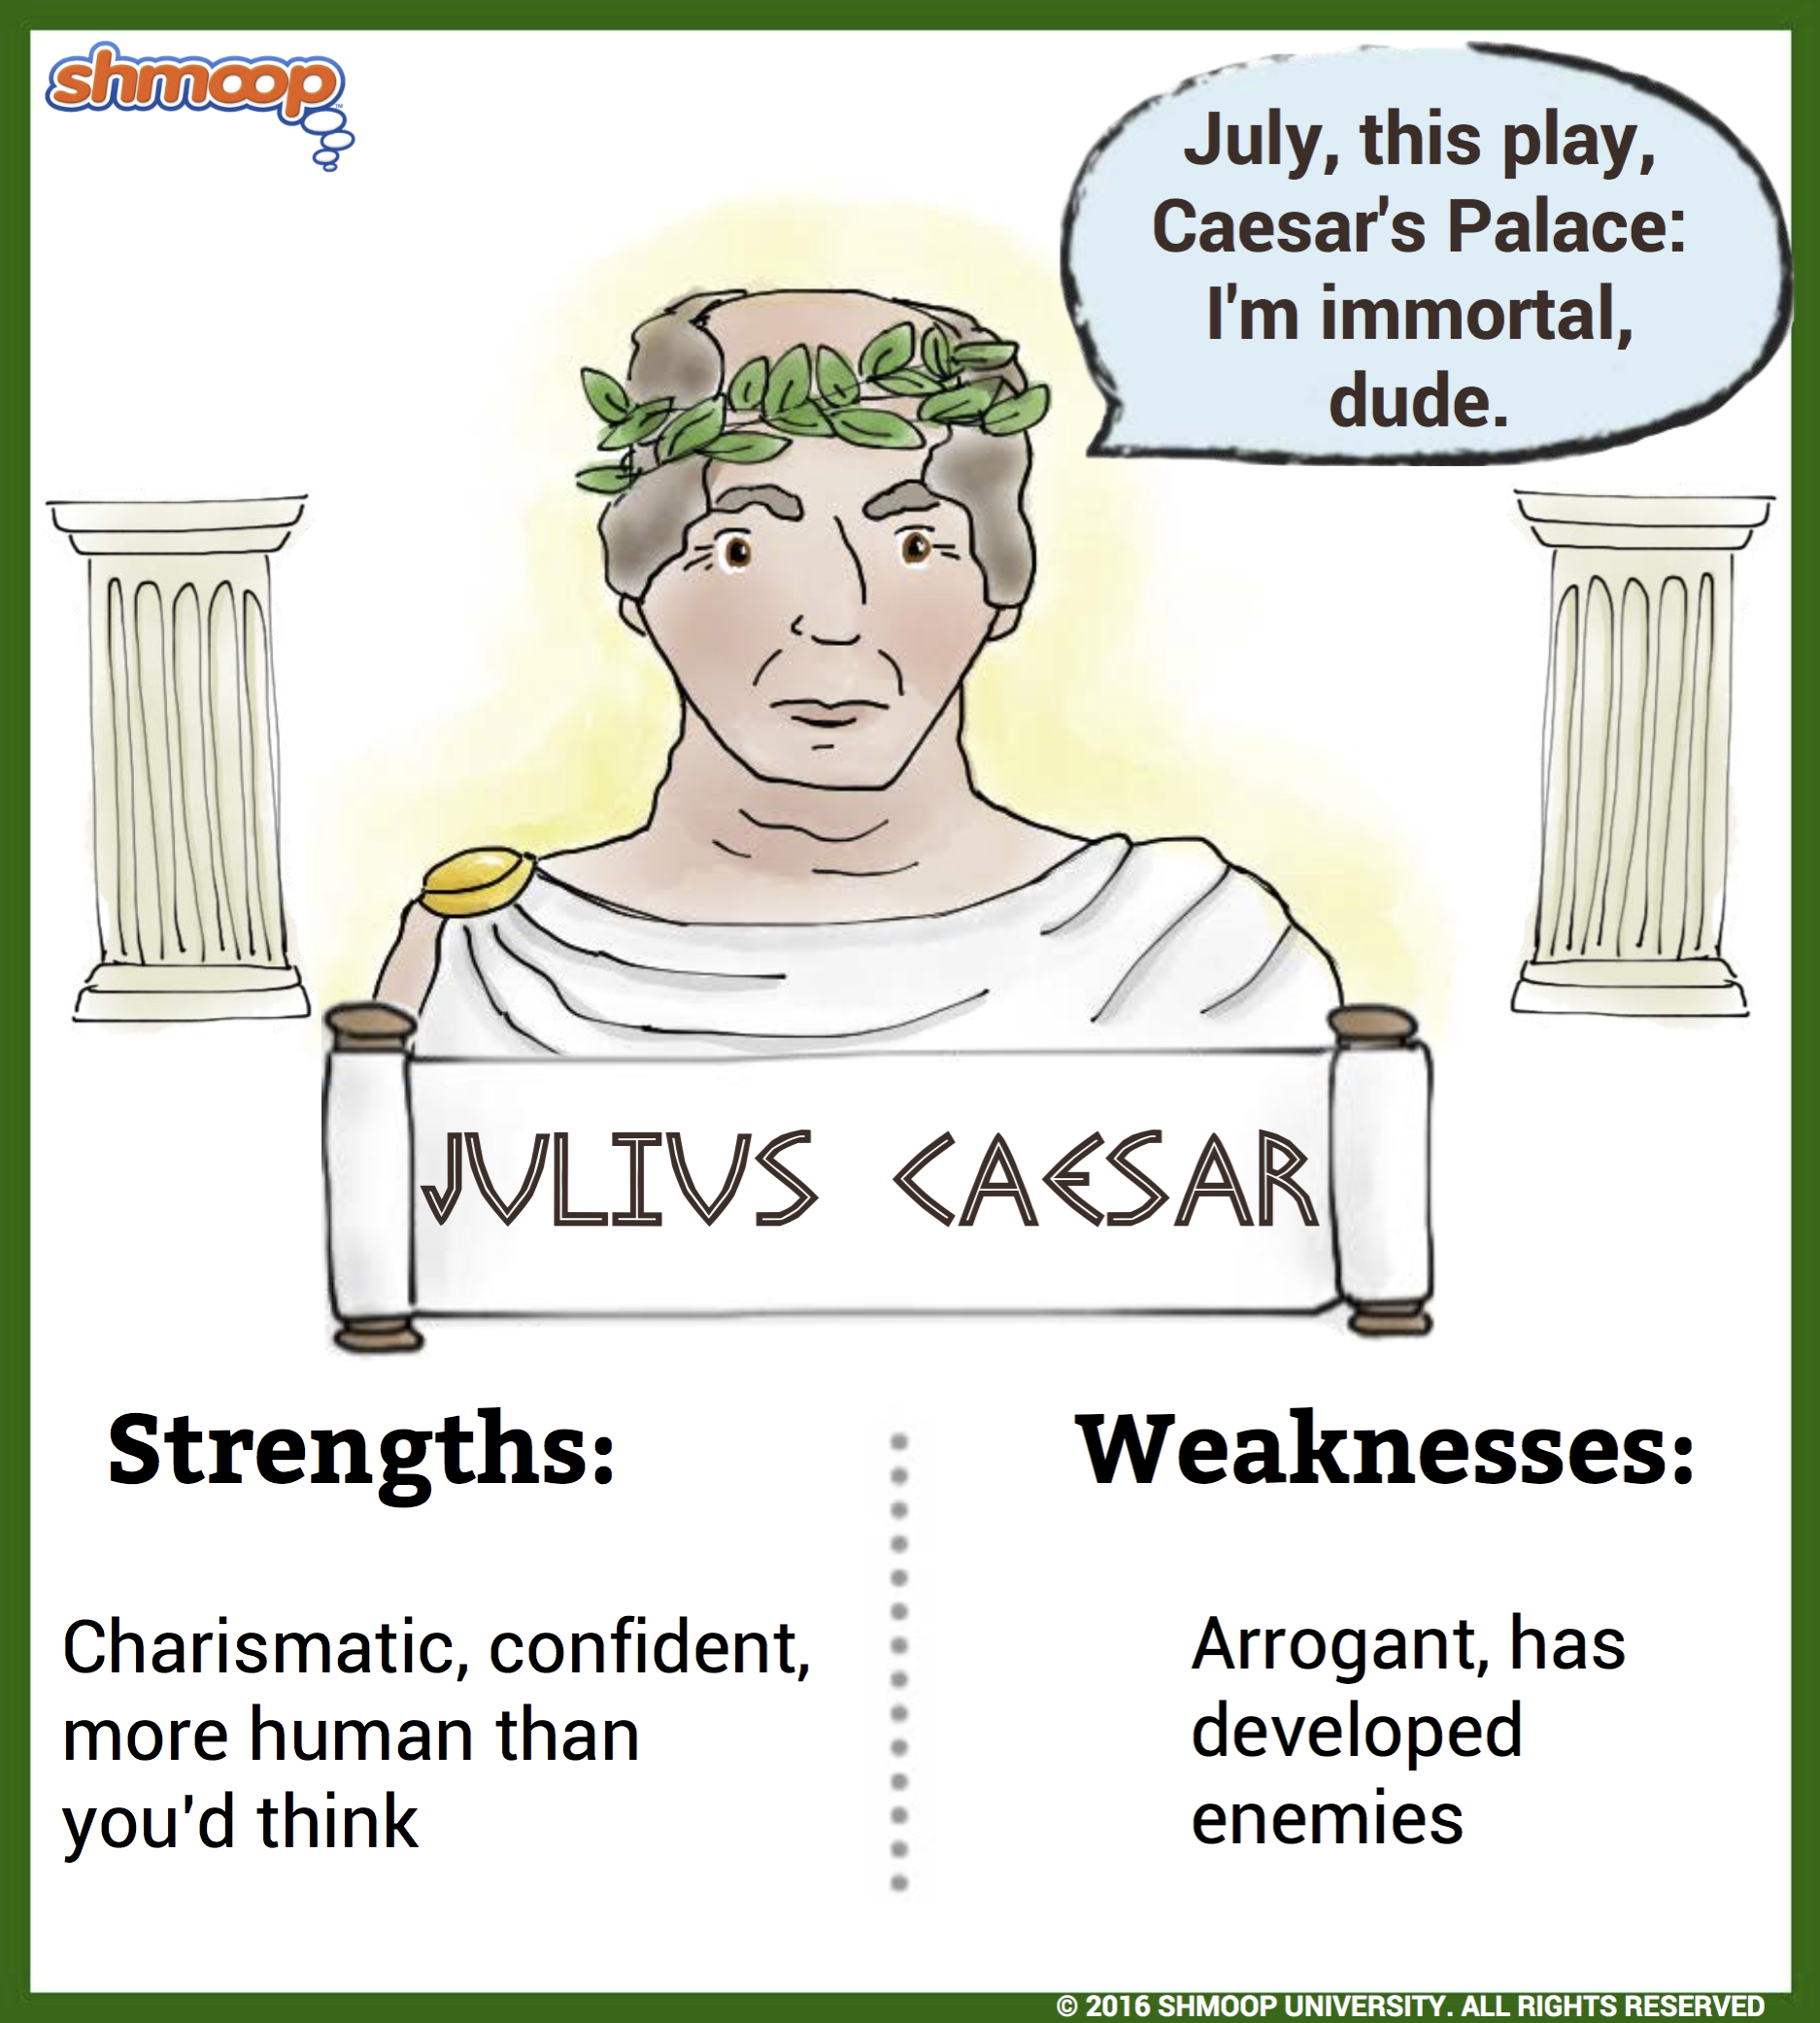 How can I improve my essay about The Tragedy of Julius Caesar?